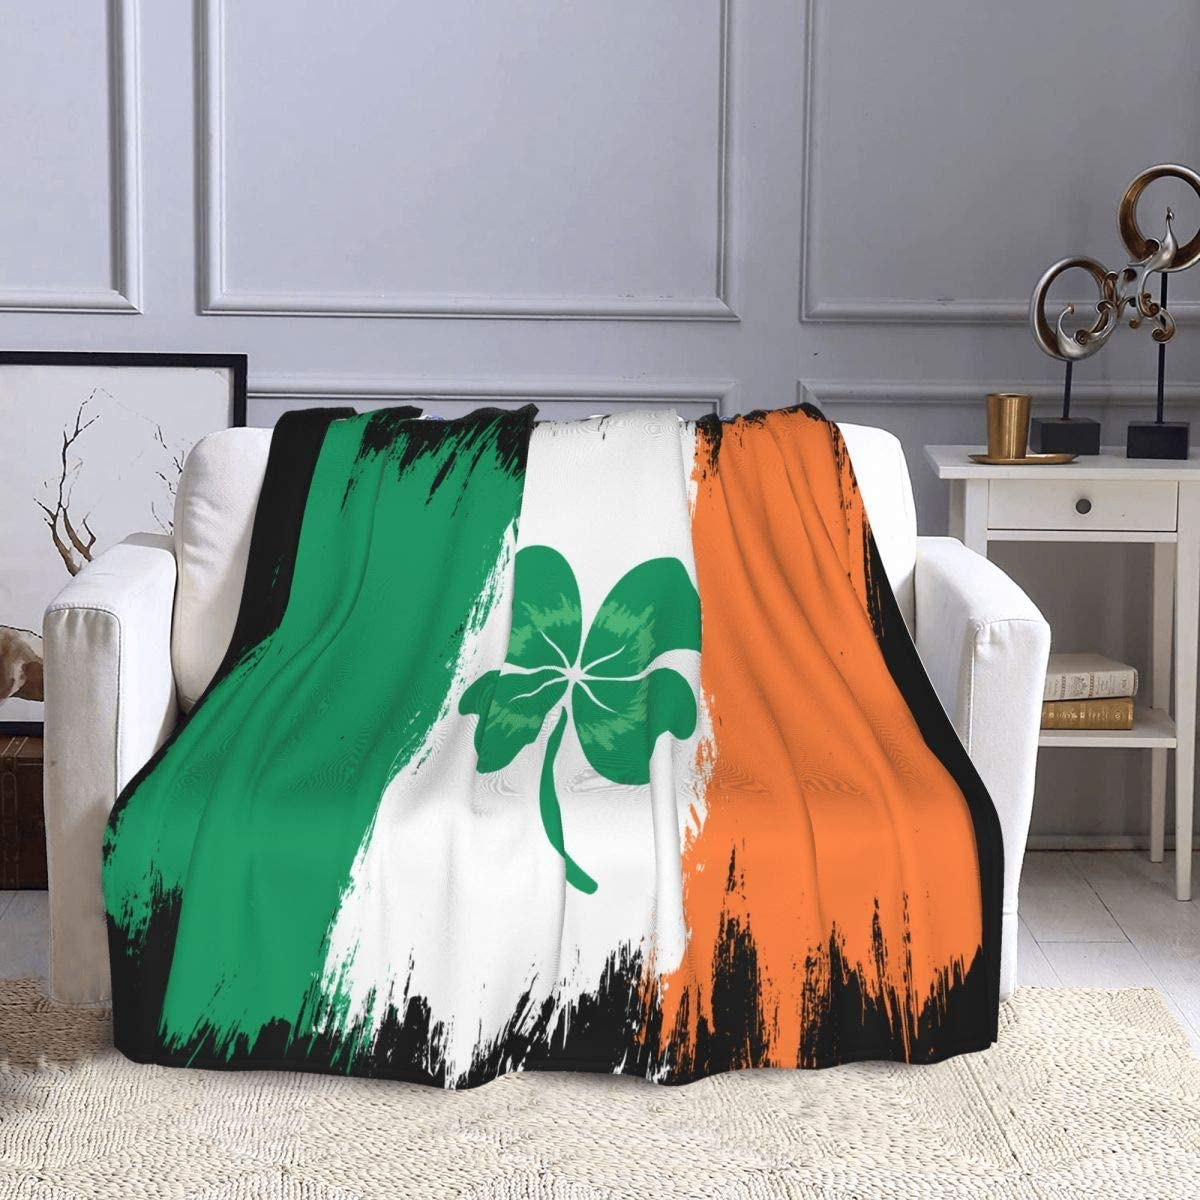 D-WOLVES Vintage Ireland Online limited product Flag with Selling and selling fo Throw Lucky Clover Blanket